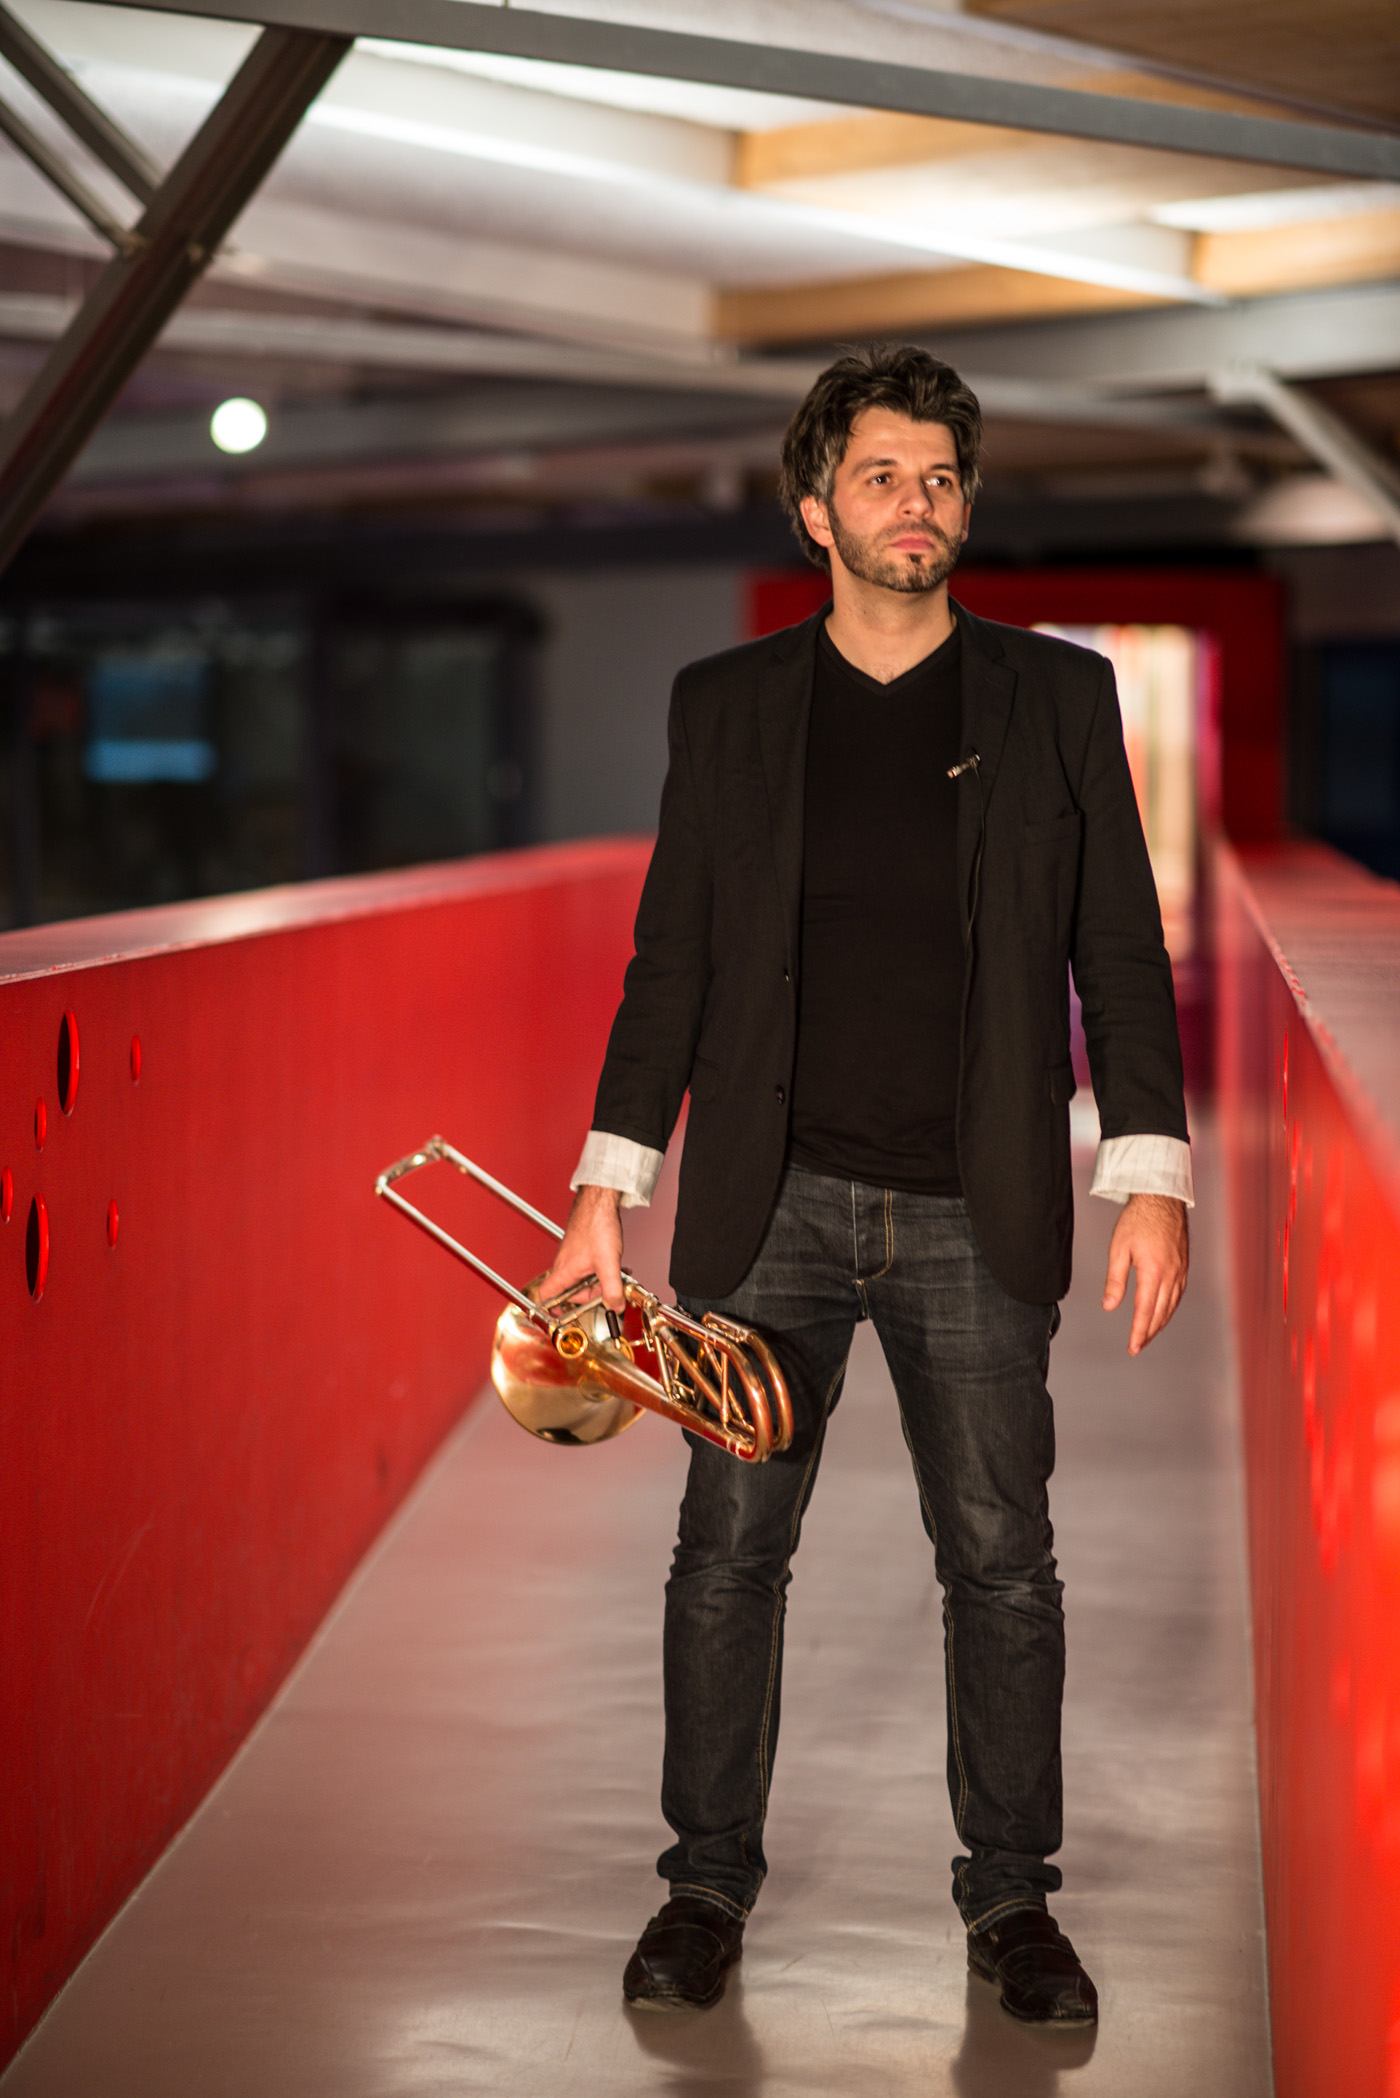 Zoltan Kiss And The World Of The Trombone AGENDA